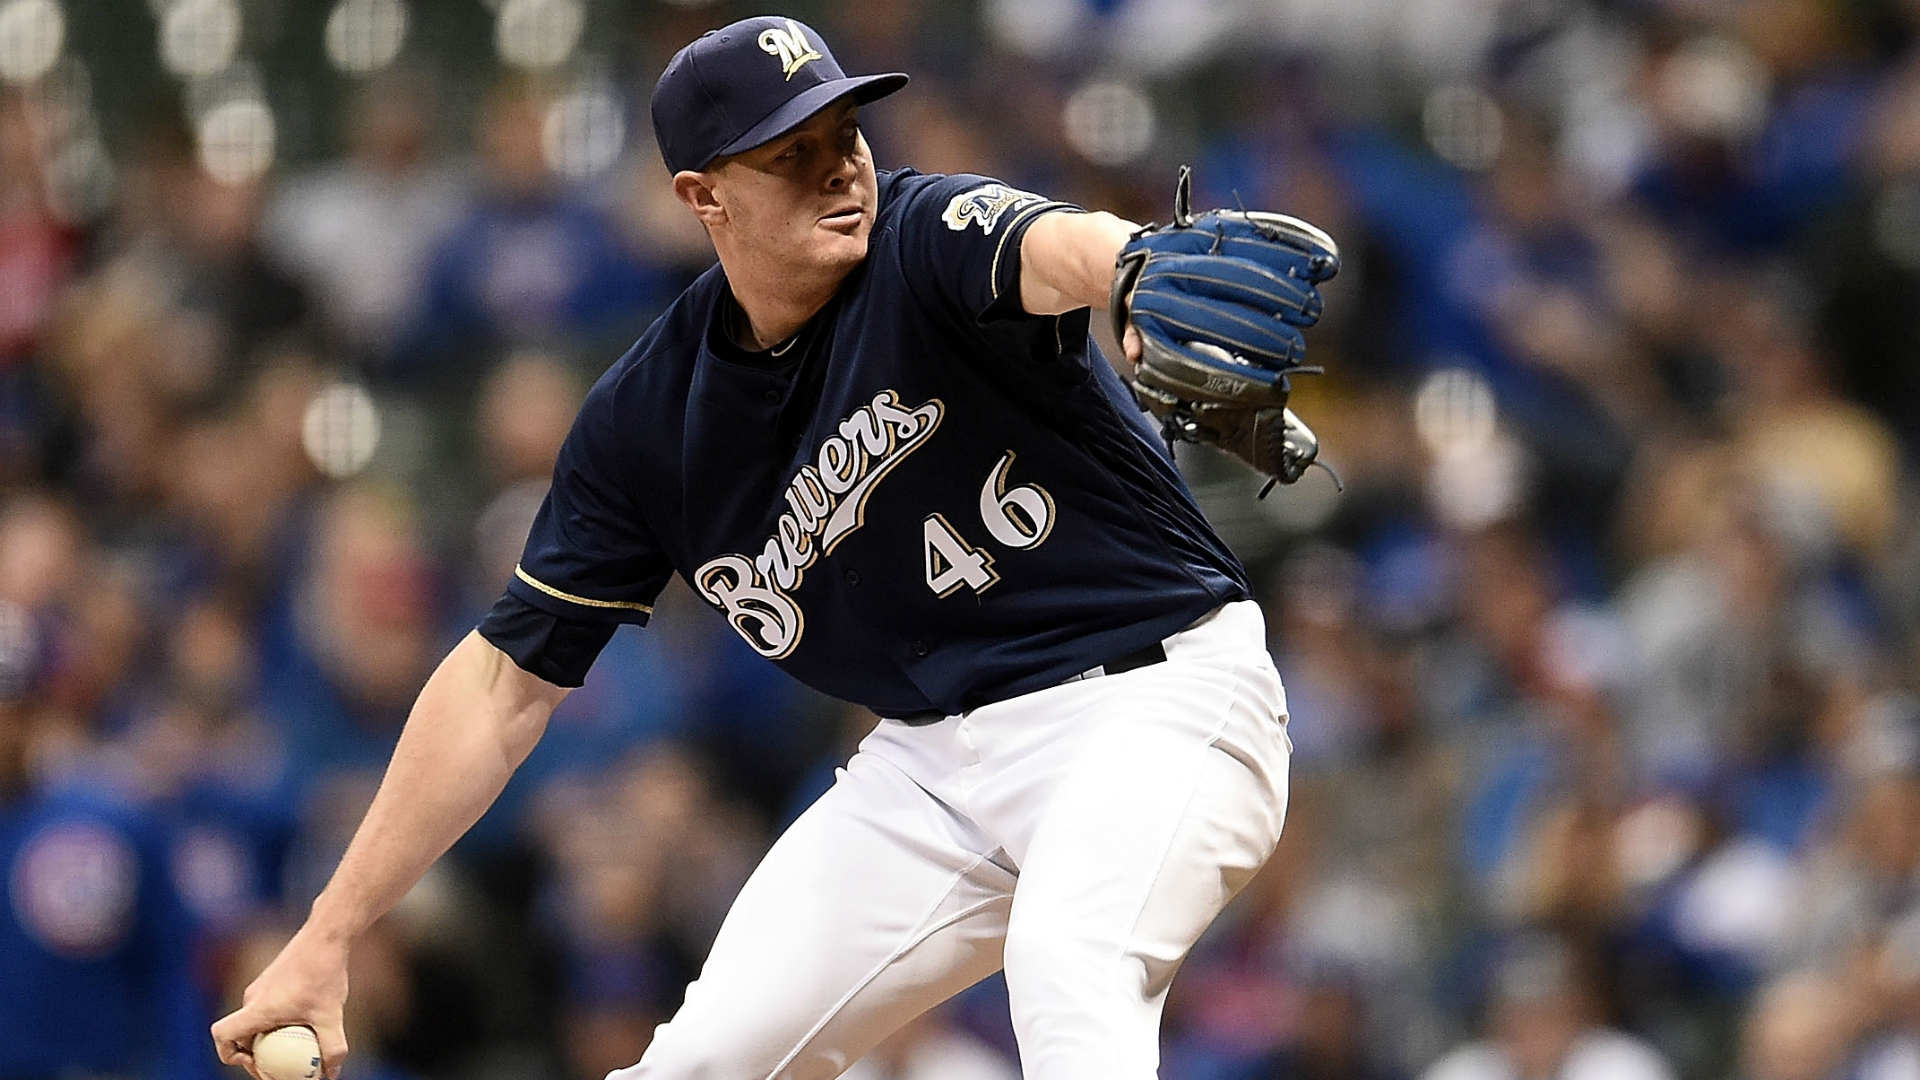 Corey Knebel injury update: Brewers reliever's elbow woes could open door for Craig Kimbrel